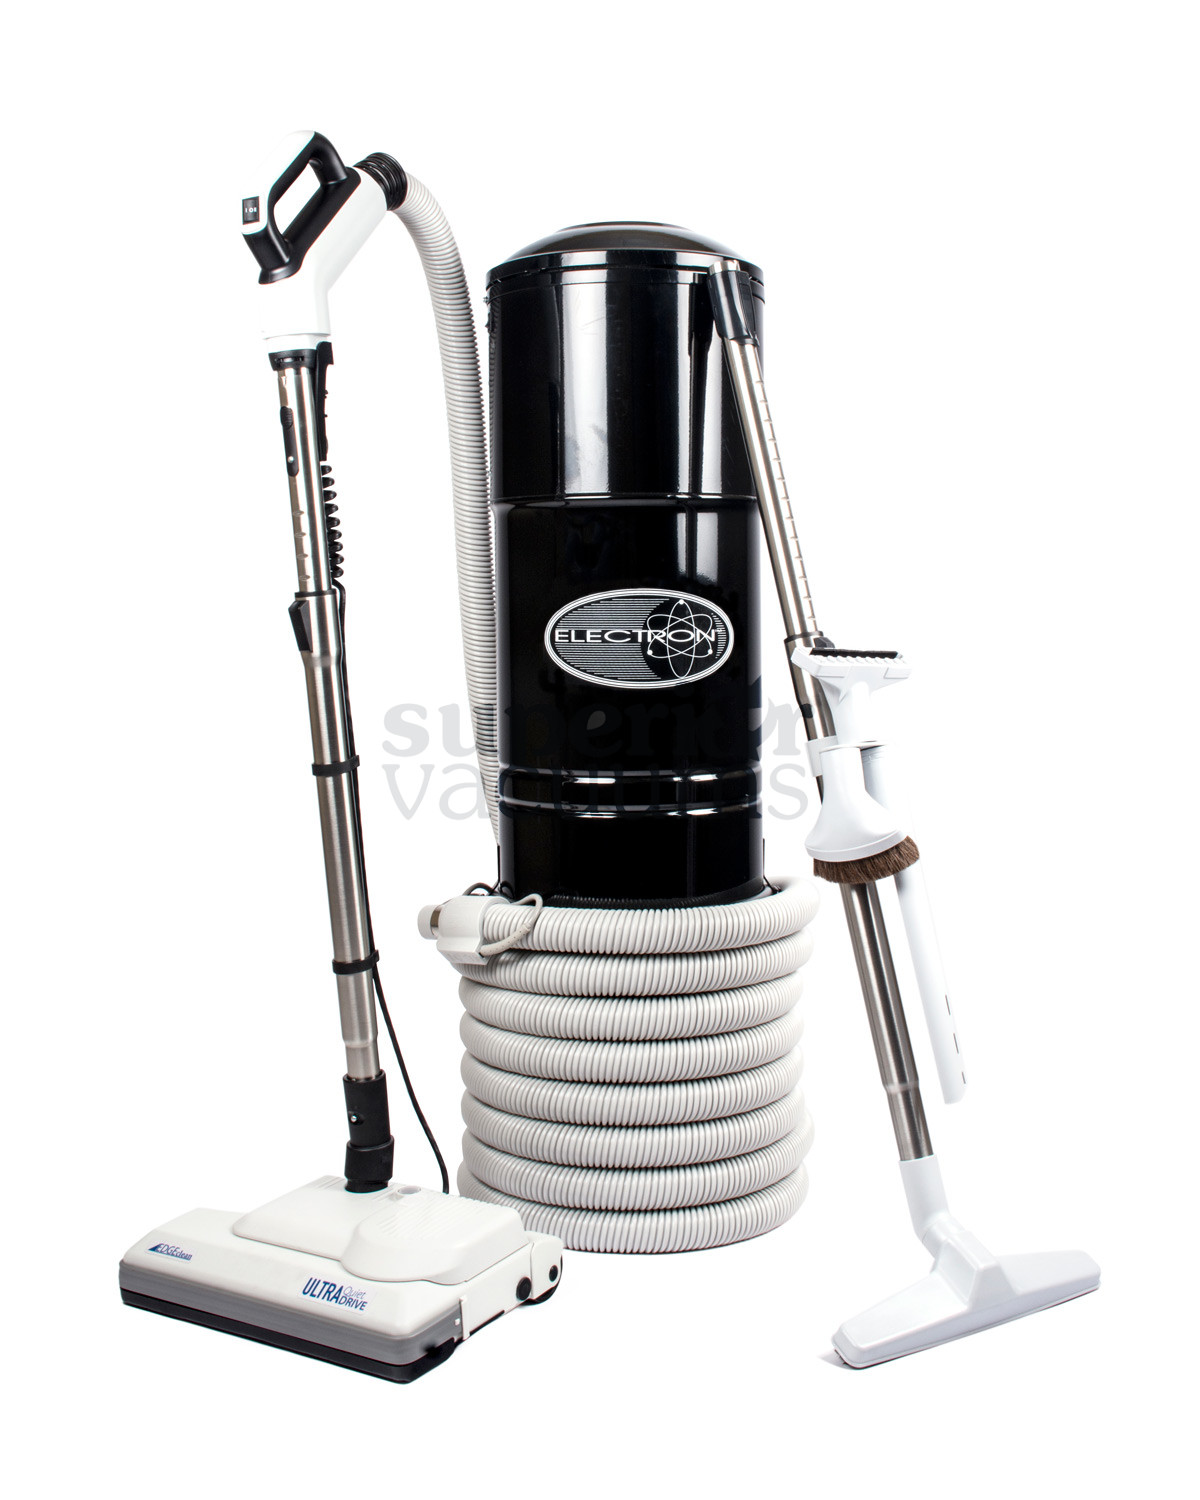 Central Vacuum And Tecnica Kit Black Hybrid With Dustlock Bag And Filter